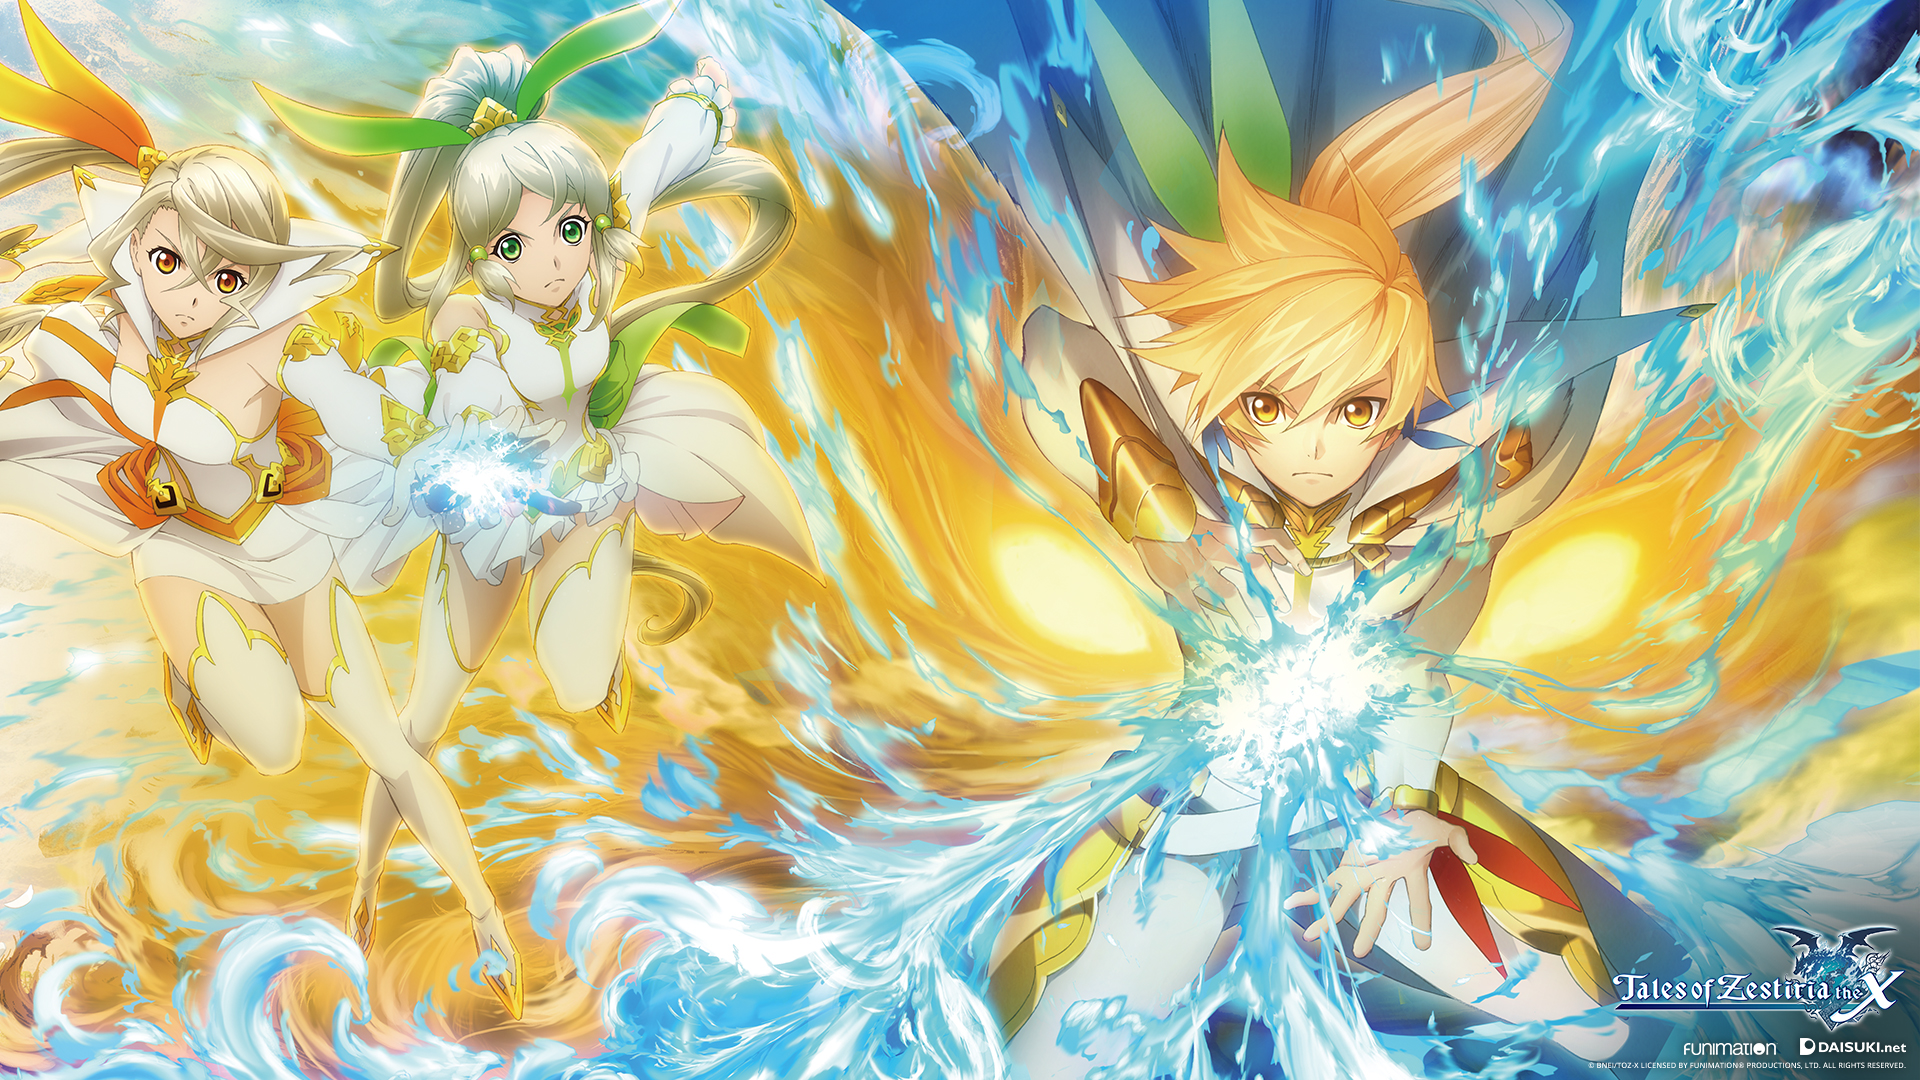 Anime Devil Wallpaper Tales Of Zestiria The X Wallpapers Funimation Blog